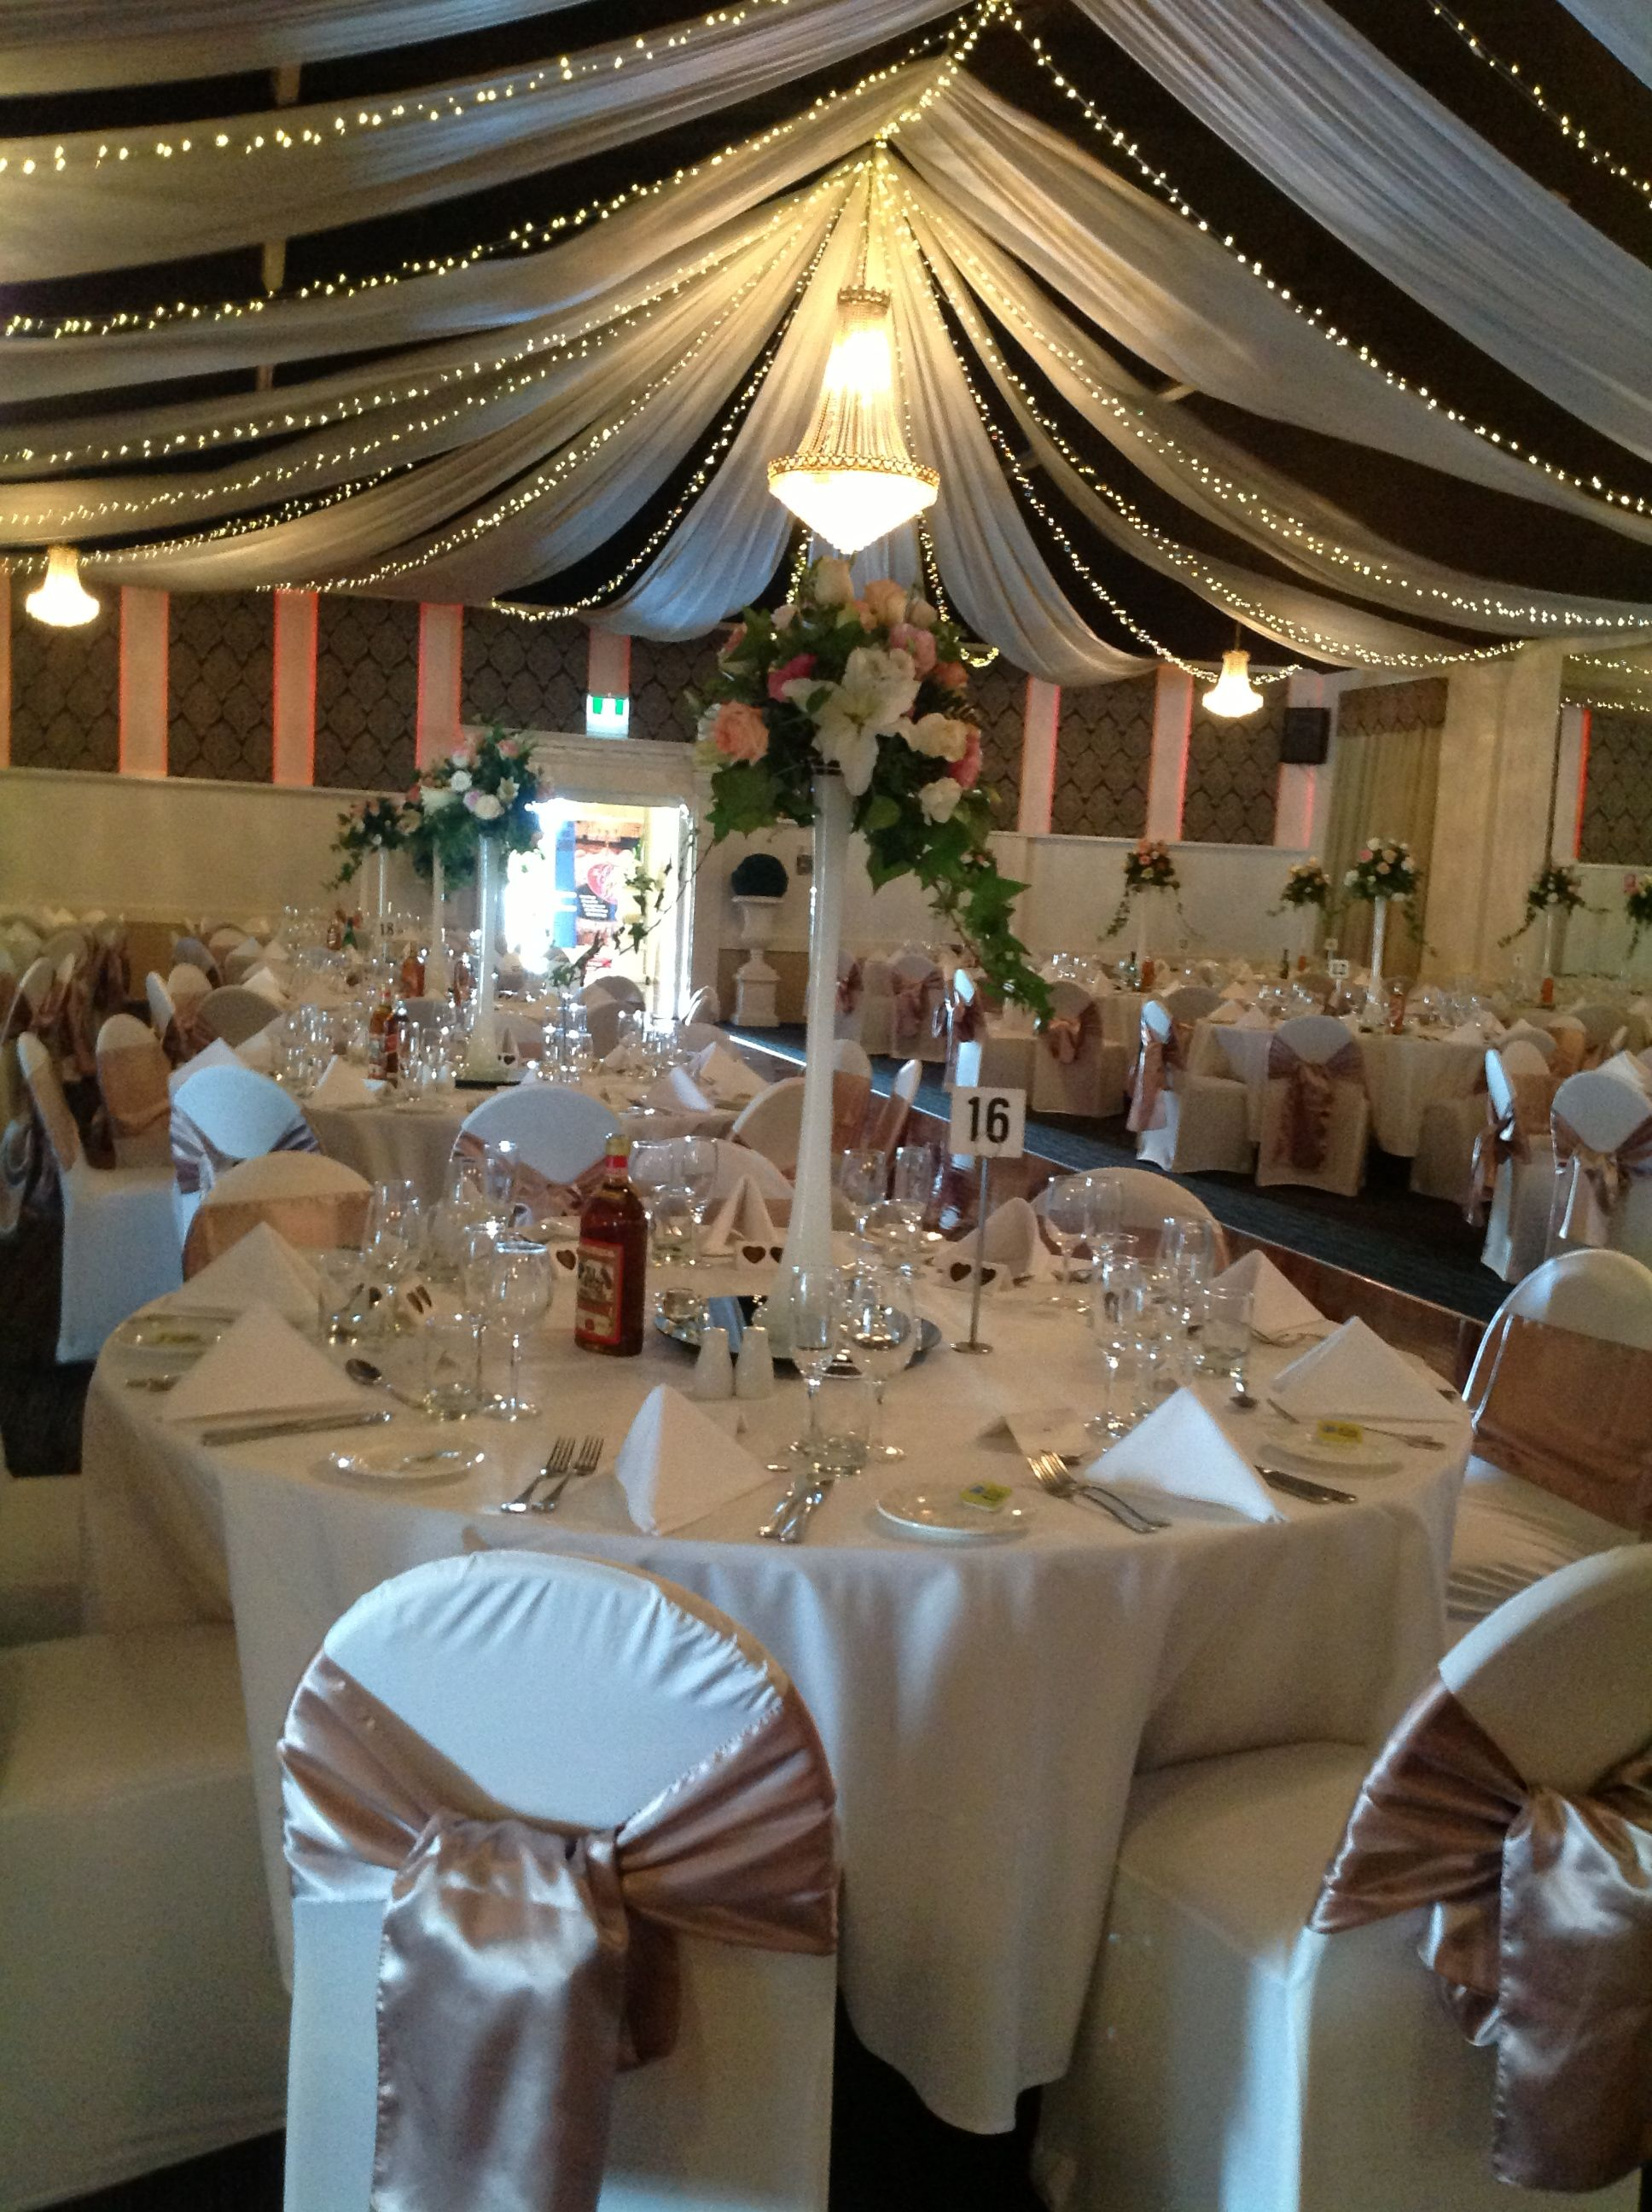 Adelaide Wedding Reception Decor With Chair Covers Centrepieces